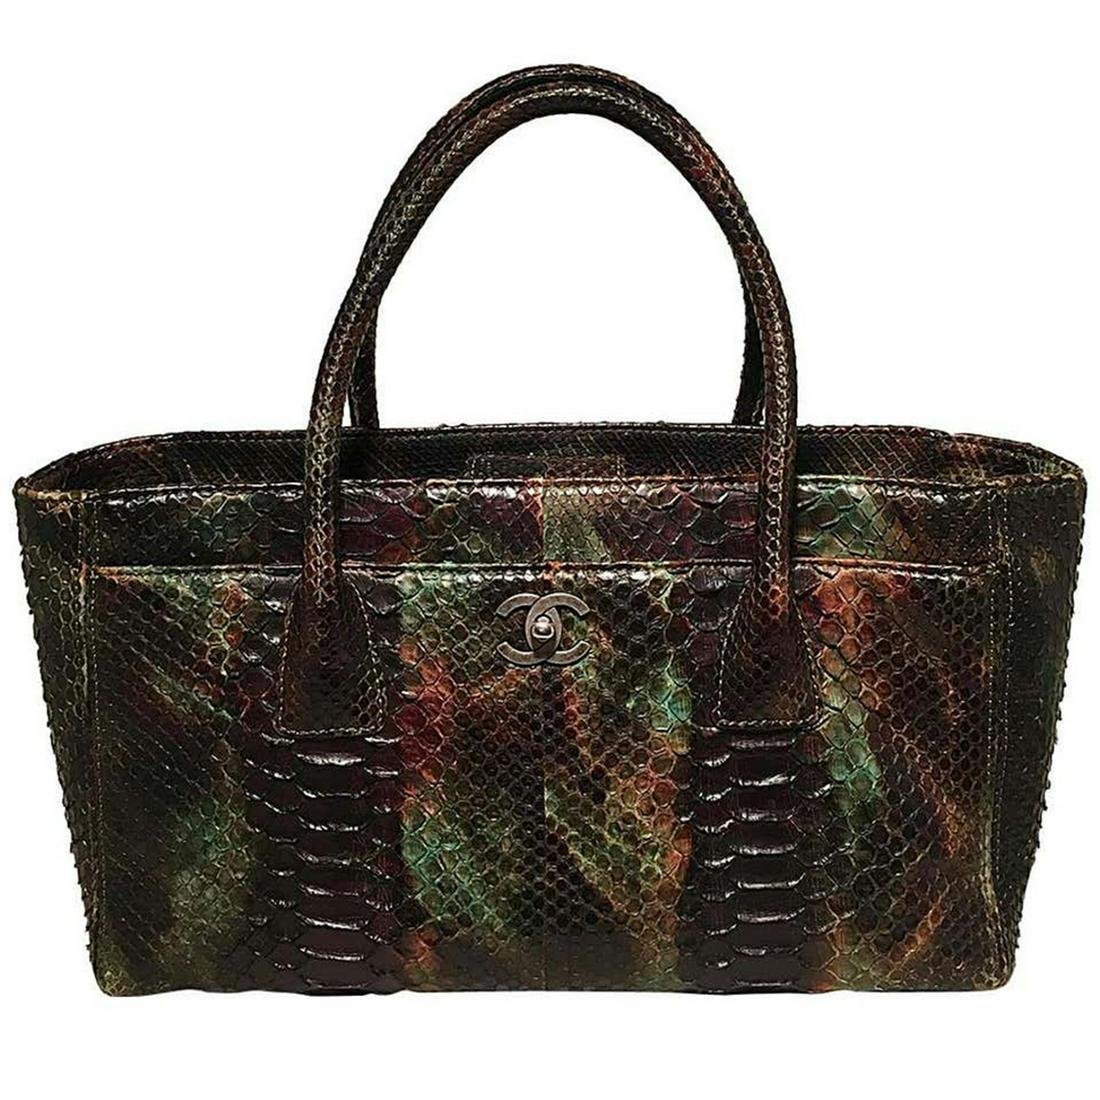 Chanel Brown & Green Python Cerf Tote Bag